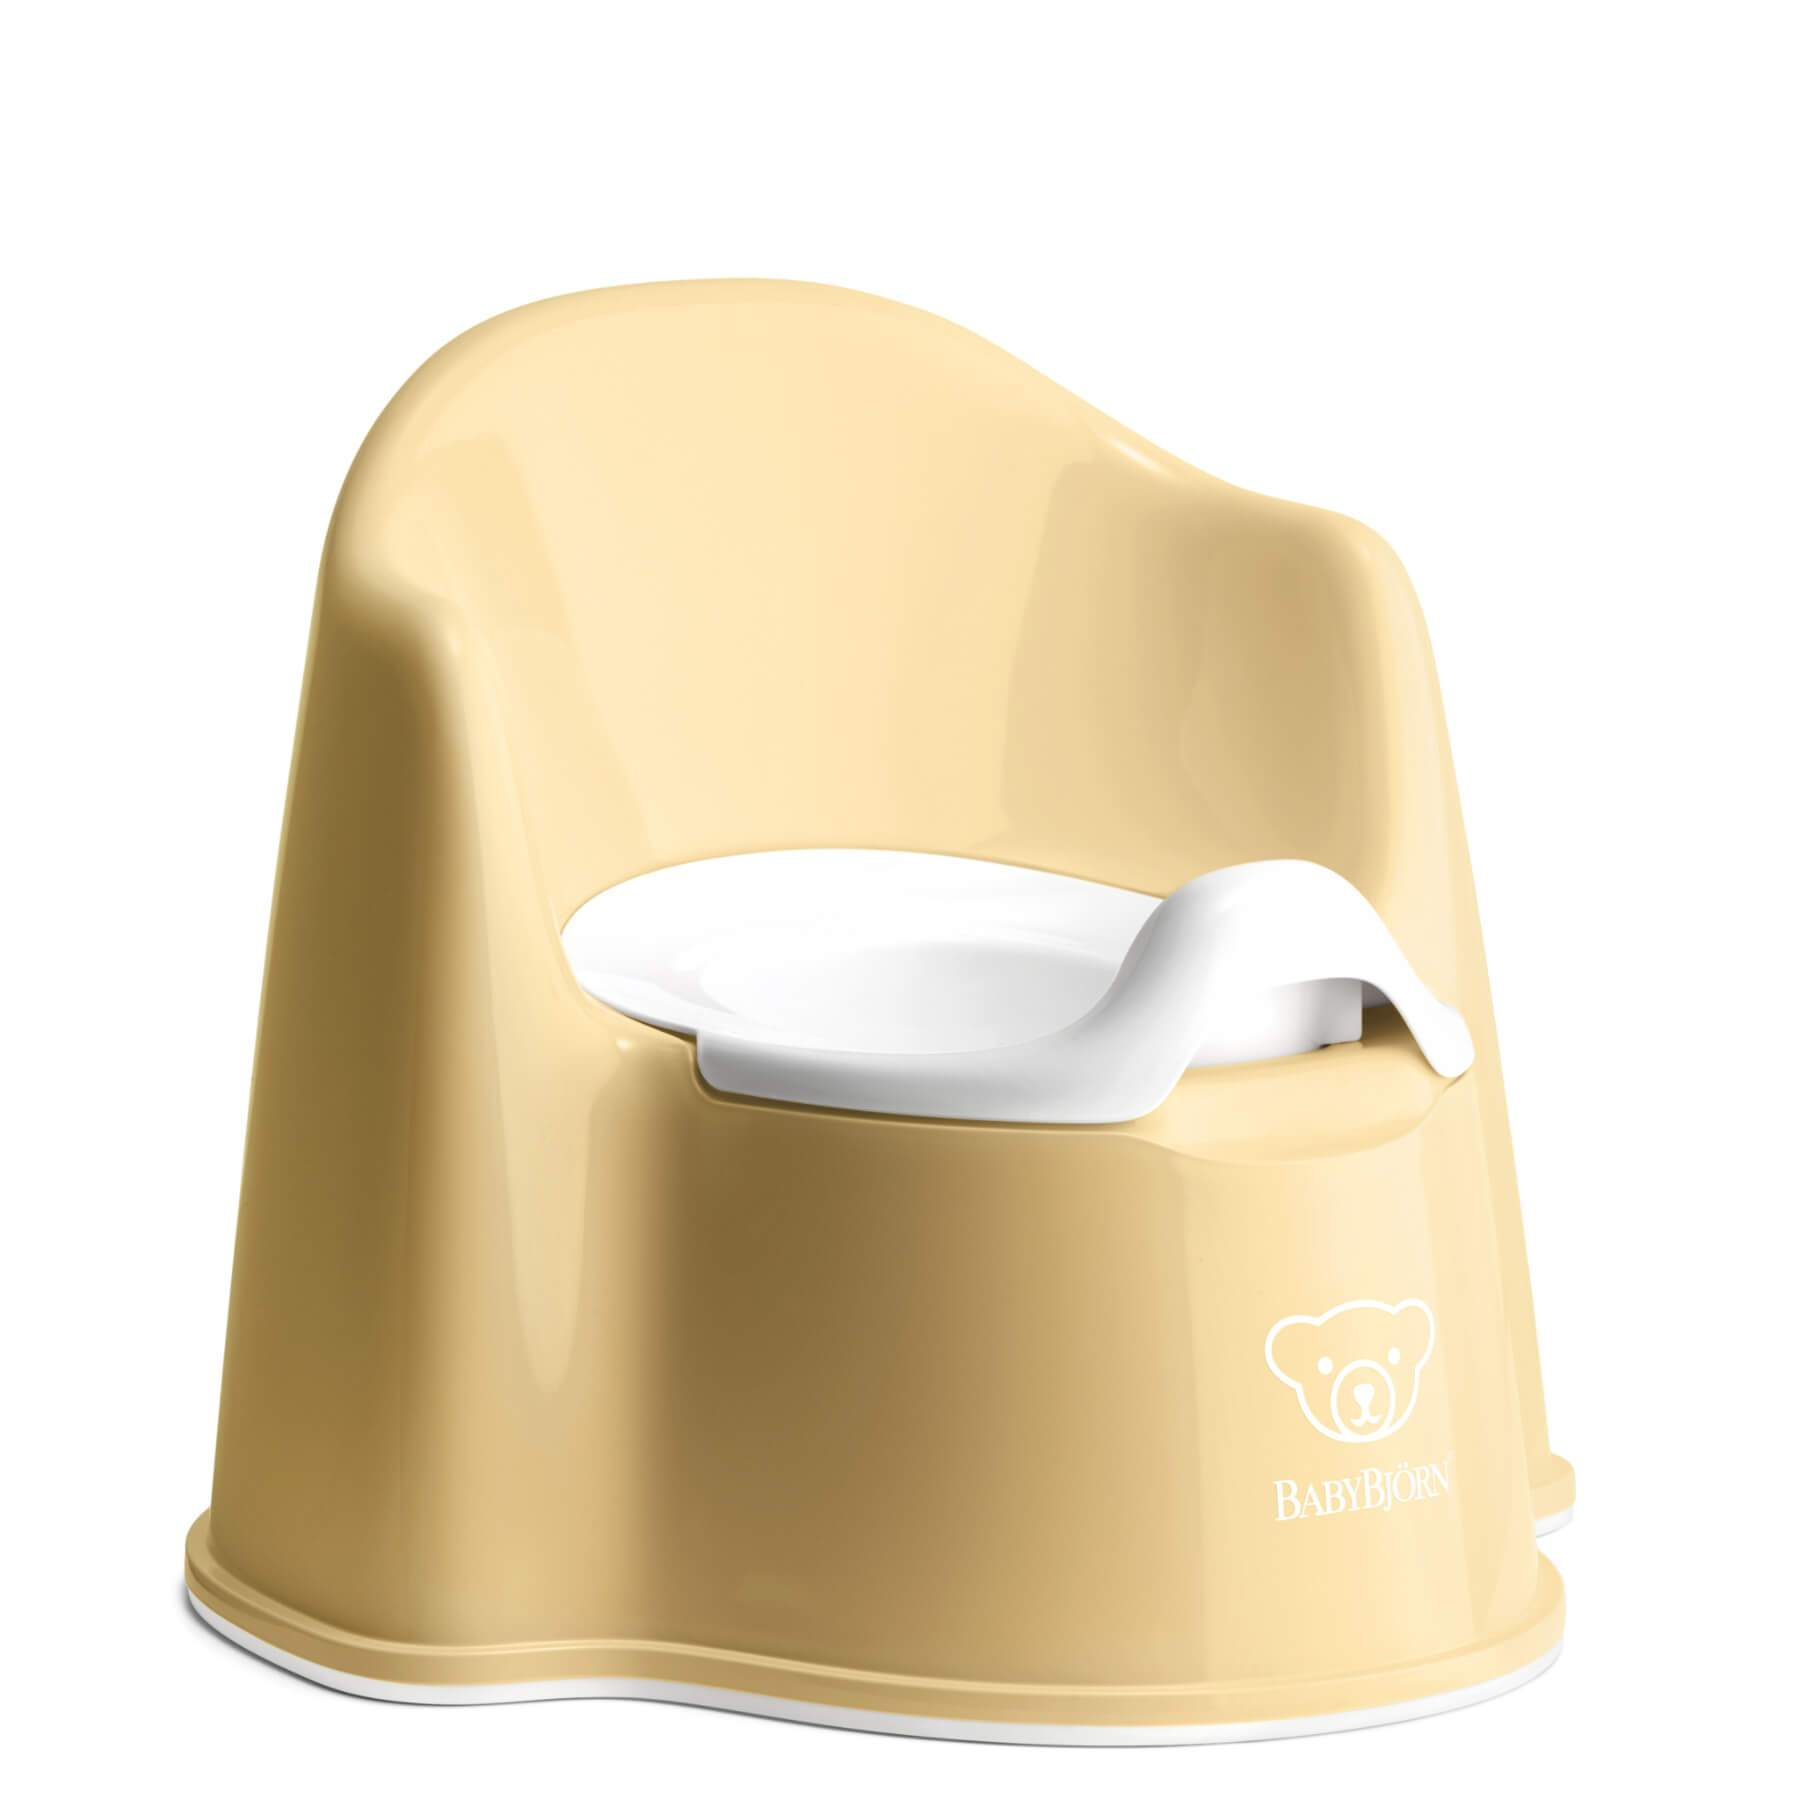 Baby Bjorn Potty Chair - Powder Yellow